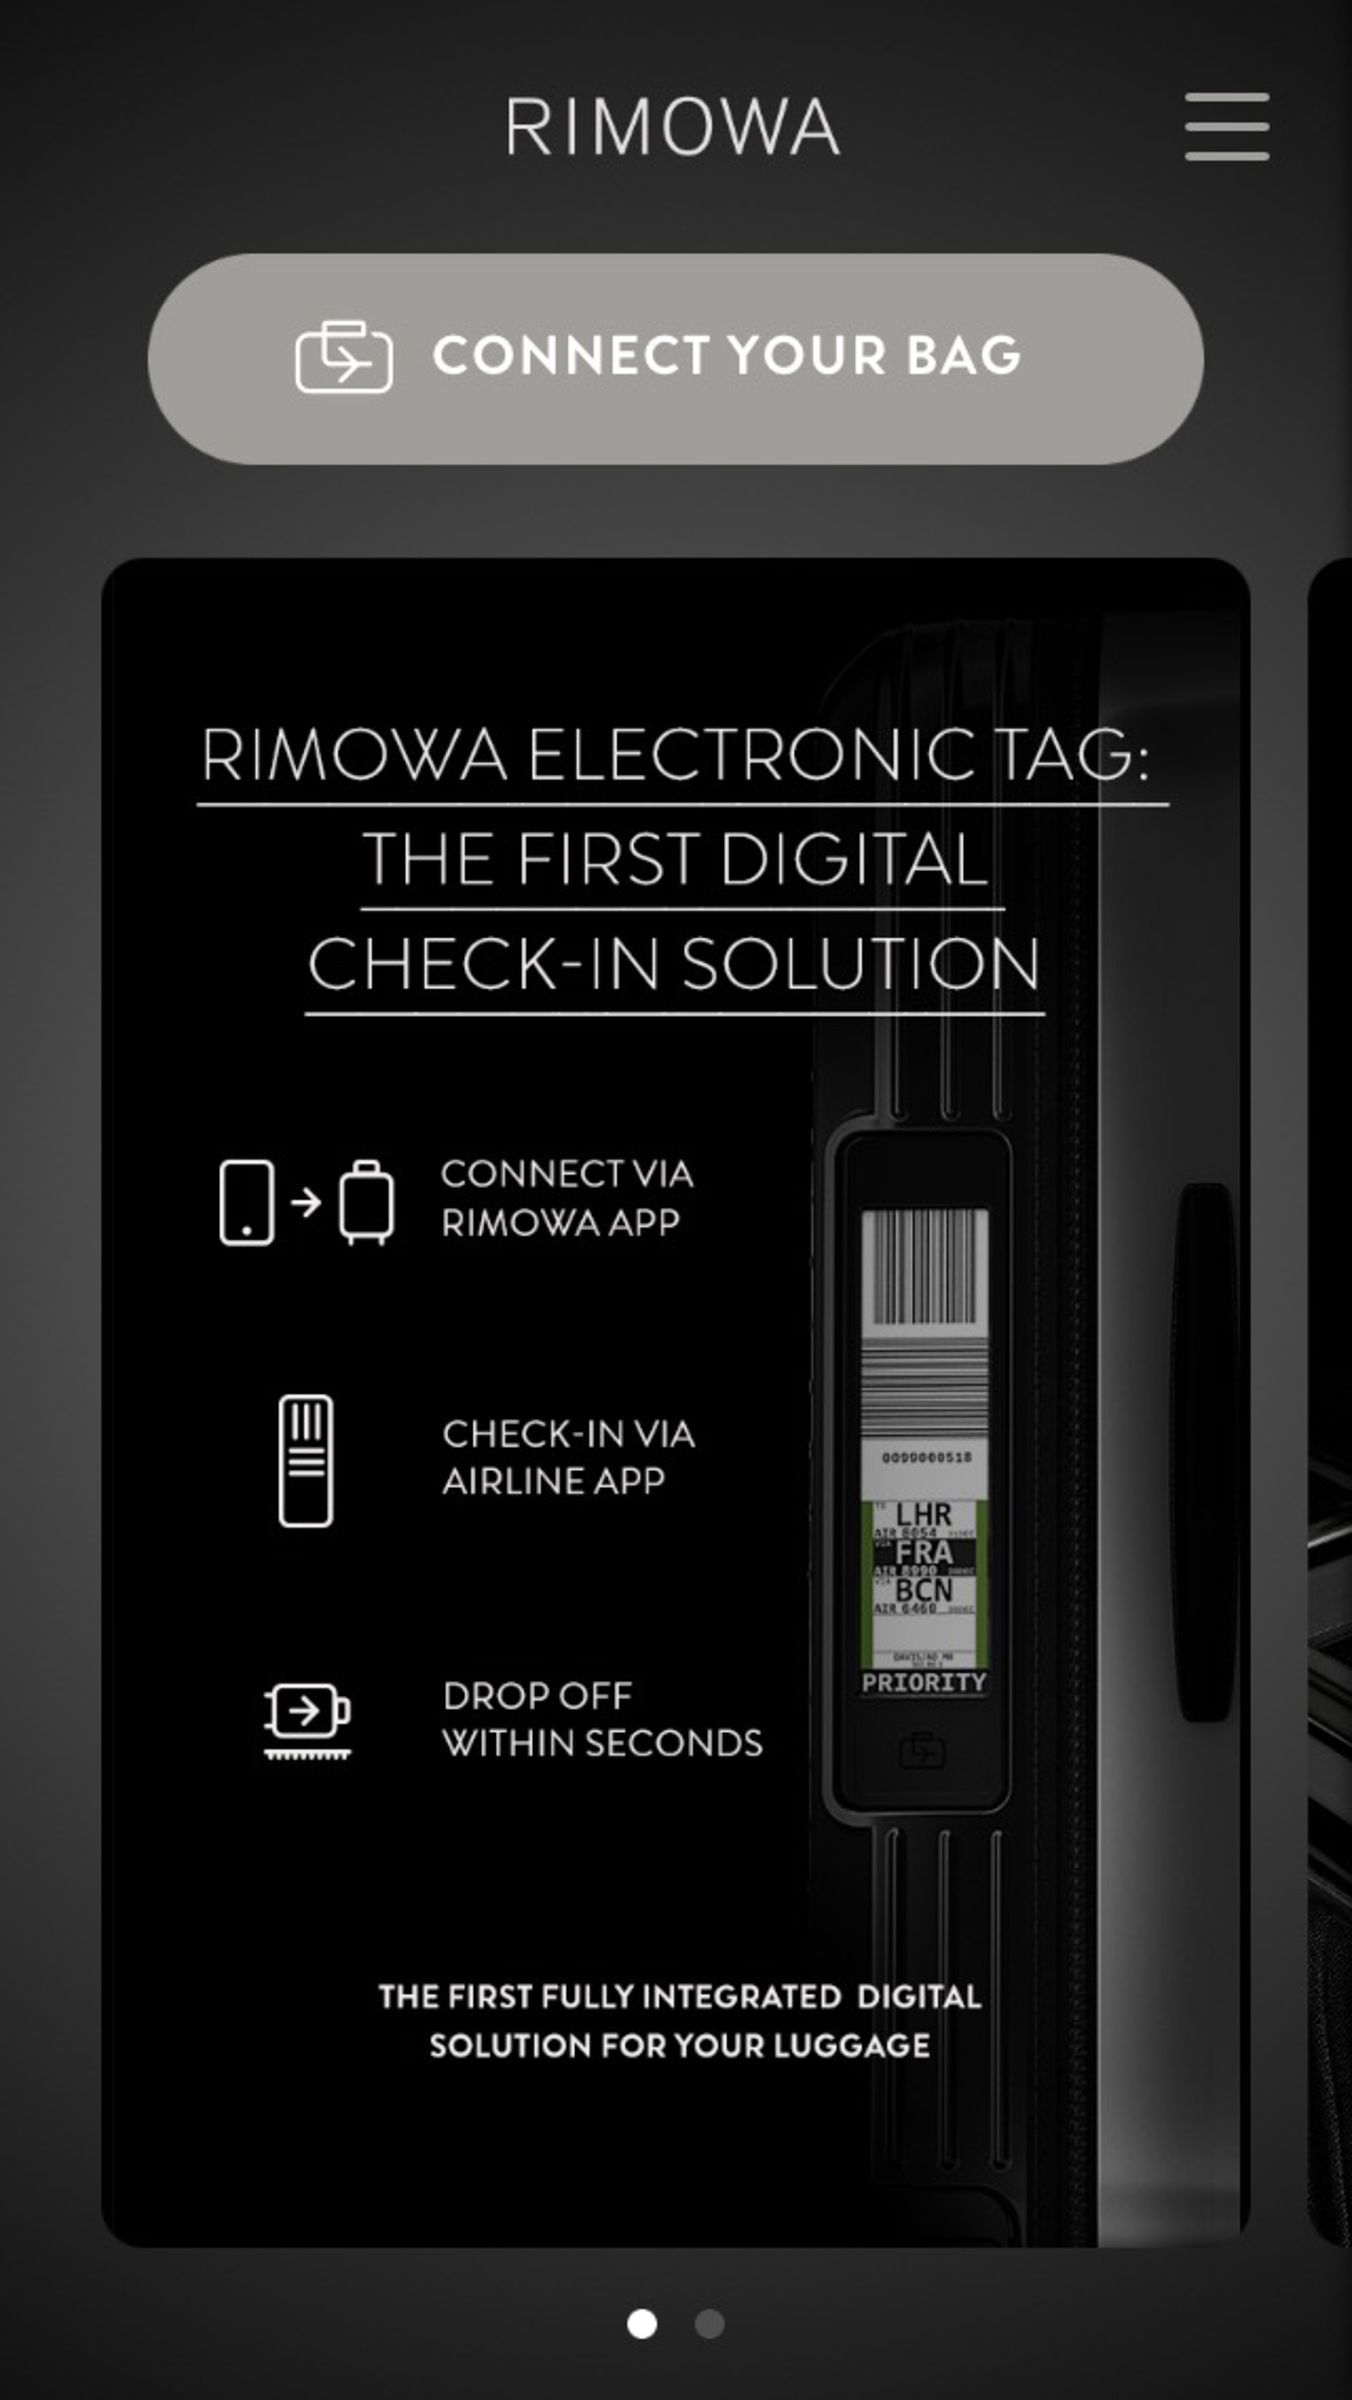 Rimowa Electronic Tag Smart Suitcase with Digital Baggage Tag